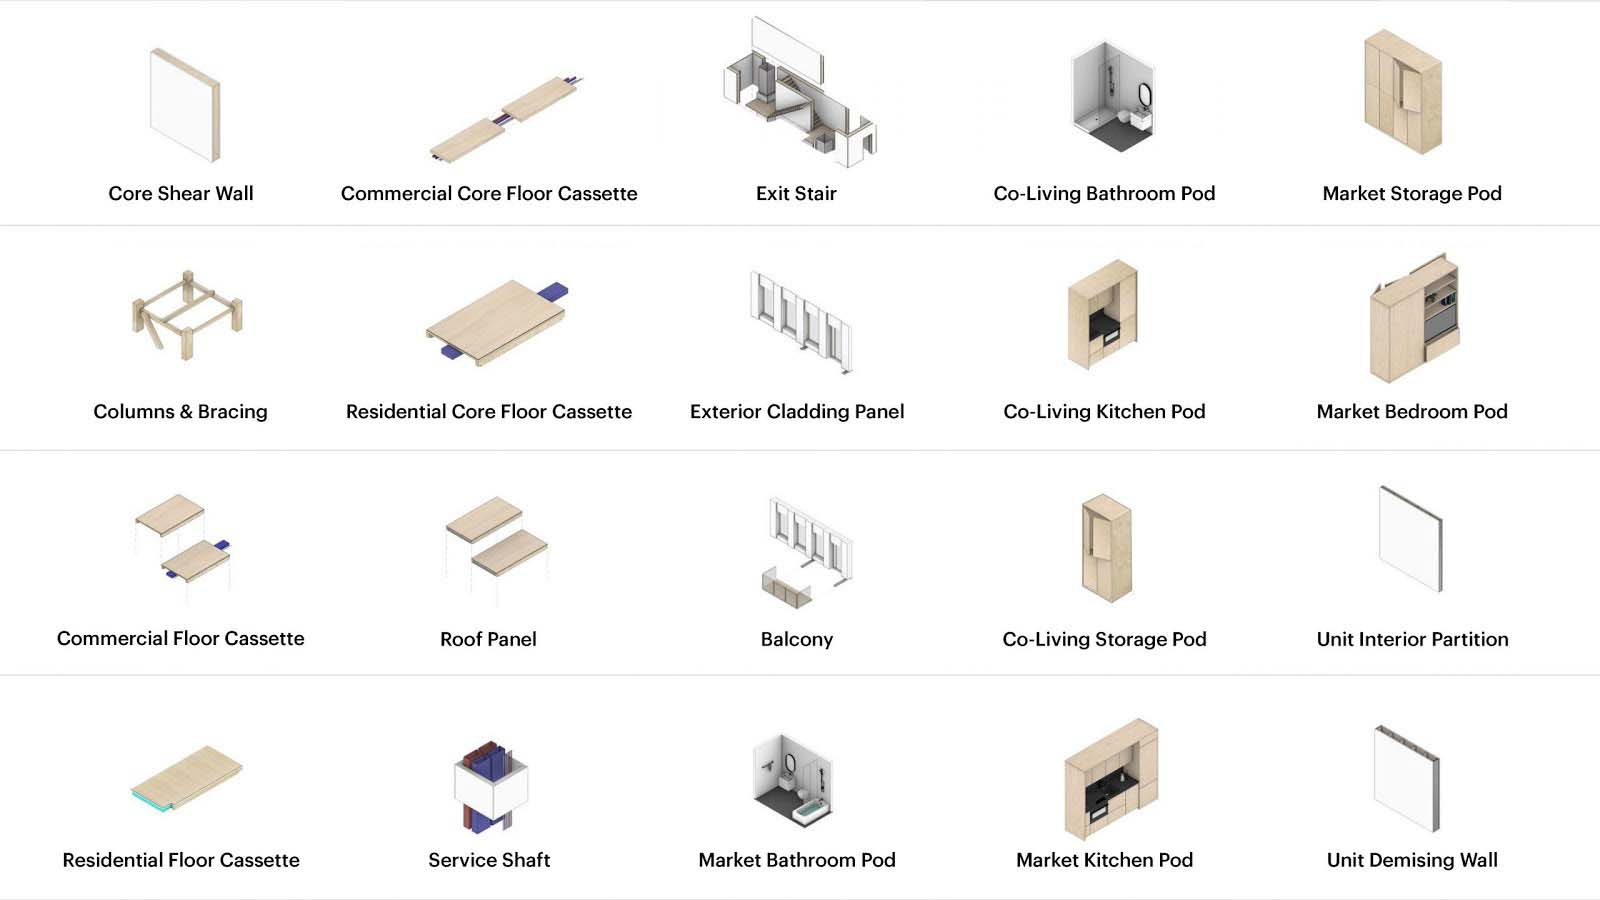 Architectural kit of parts for factory-based construction